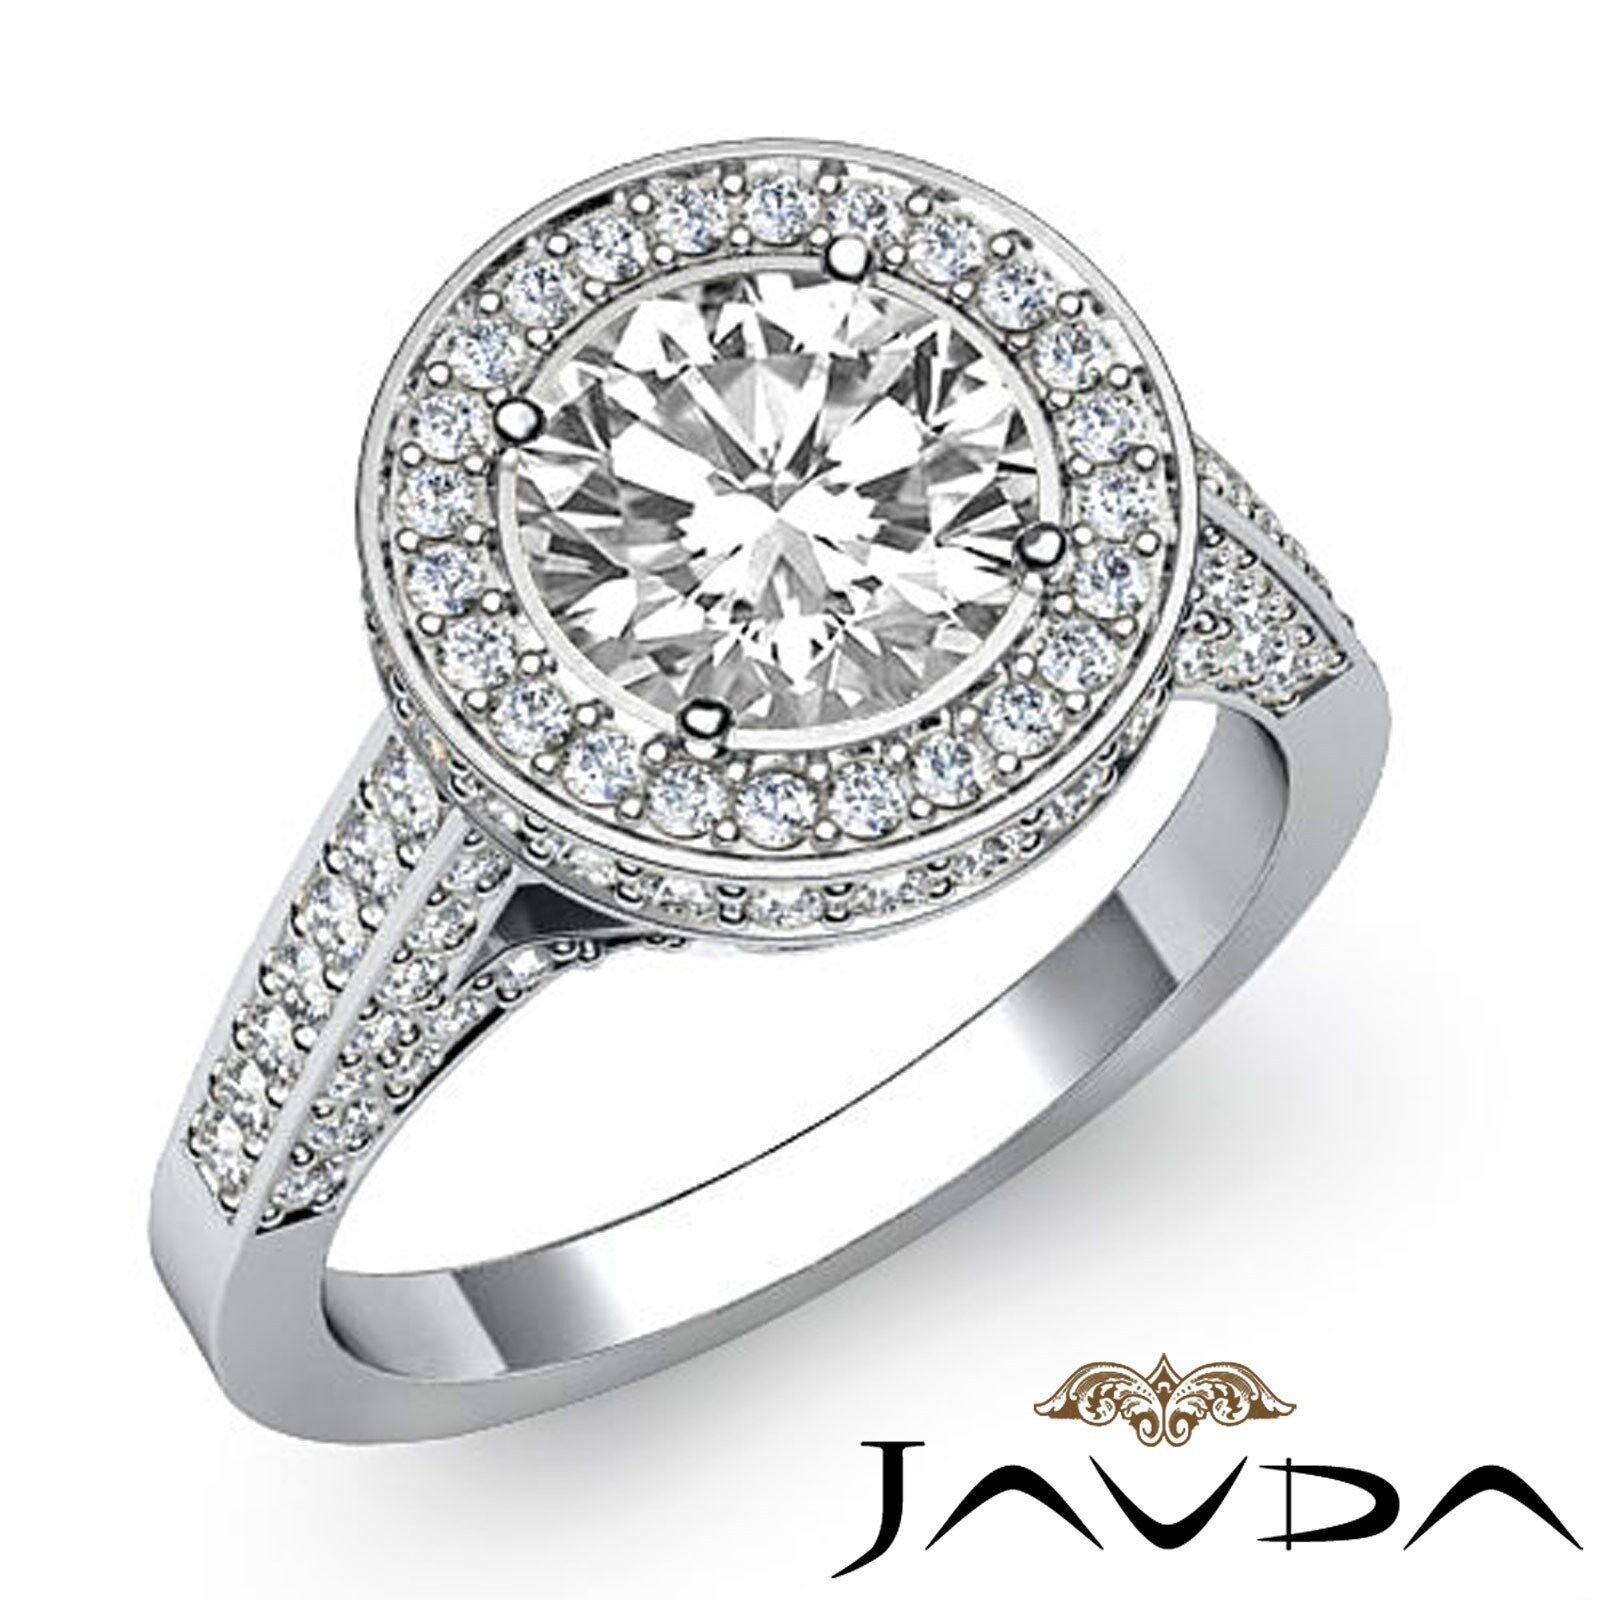 Floral Motif Circa Halo Round Diamond Engagement Ring GIA Certified I VS2 2.8 Ct